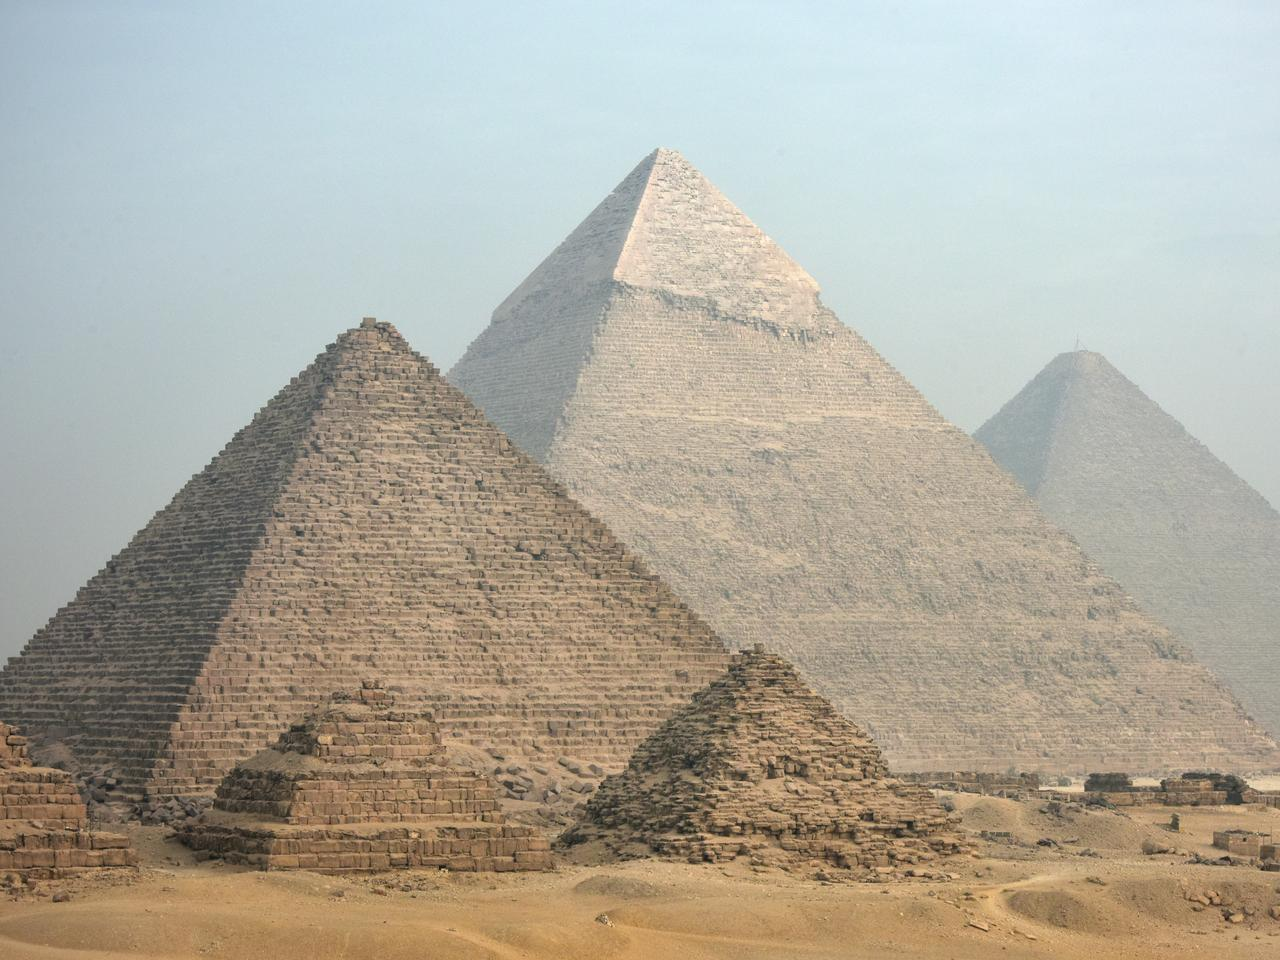 The scale of the pyramids was a bit underwhelming.